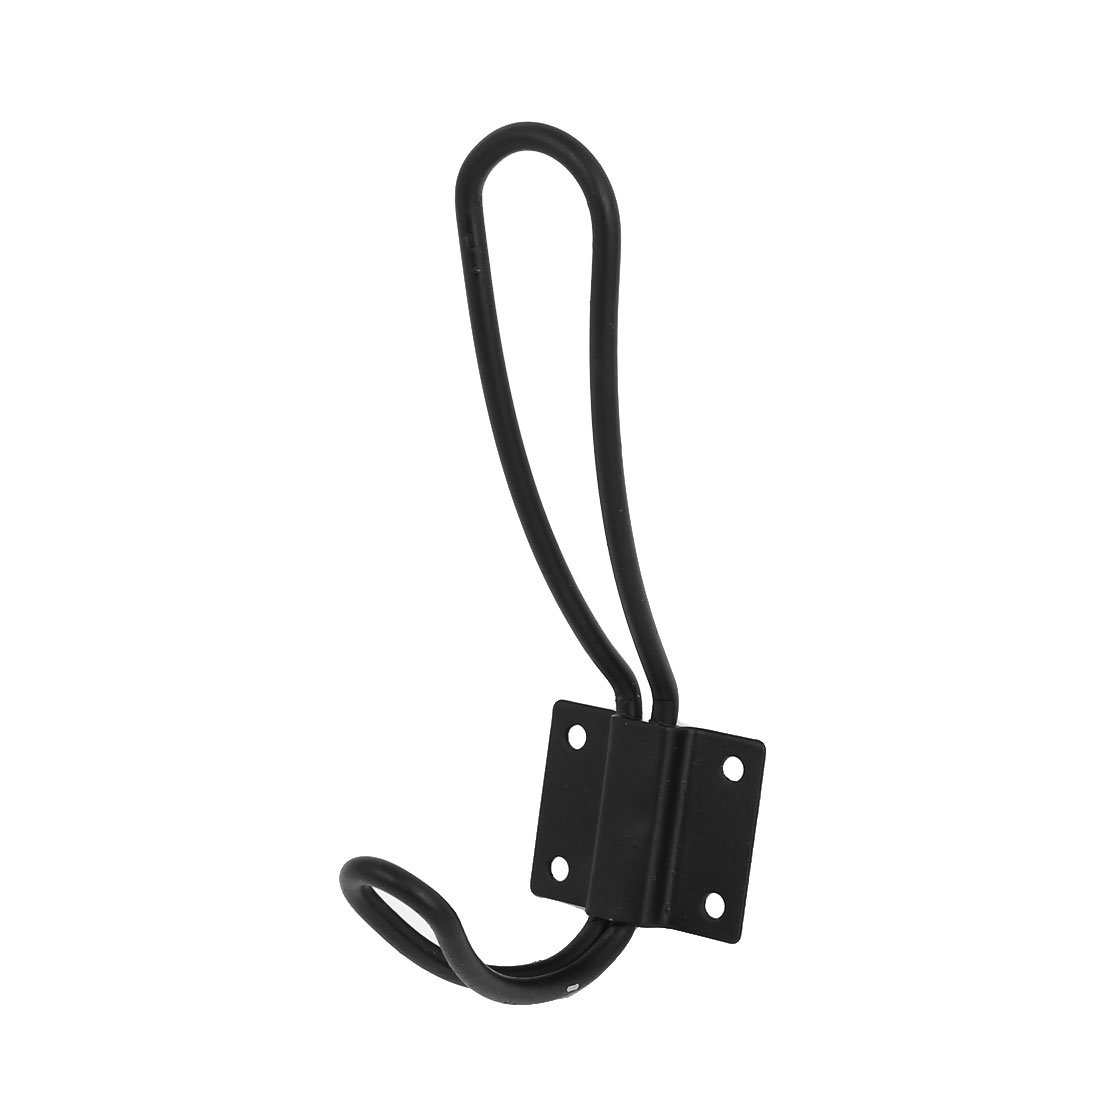 Uxcell a16062000ux0390 Kitchen Bathroom Clothes Hooks Robe Hat Coat Wall Hanger Black Dragonmarts - BISS